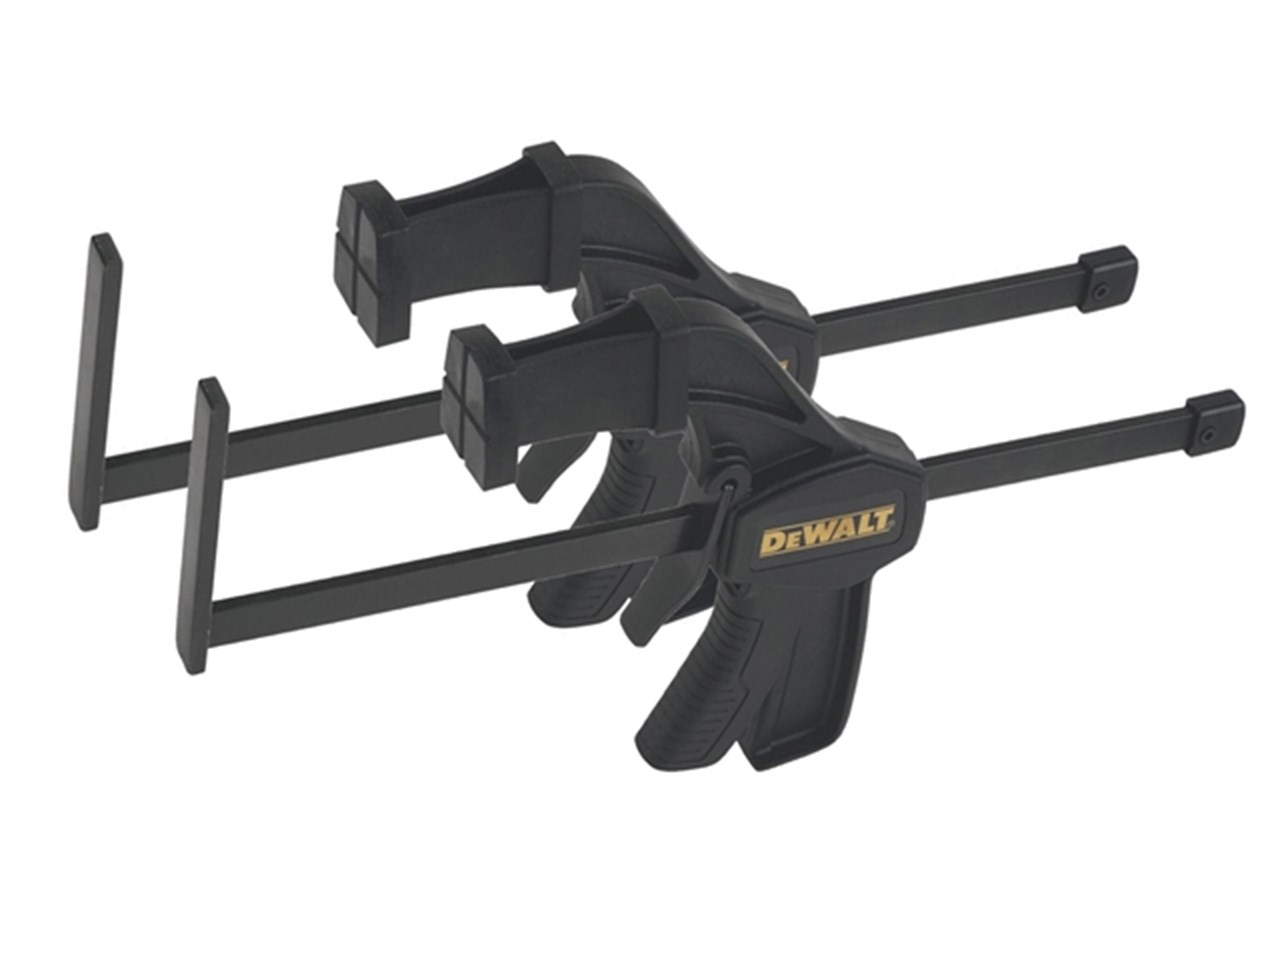 saw guide clamp | eBay